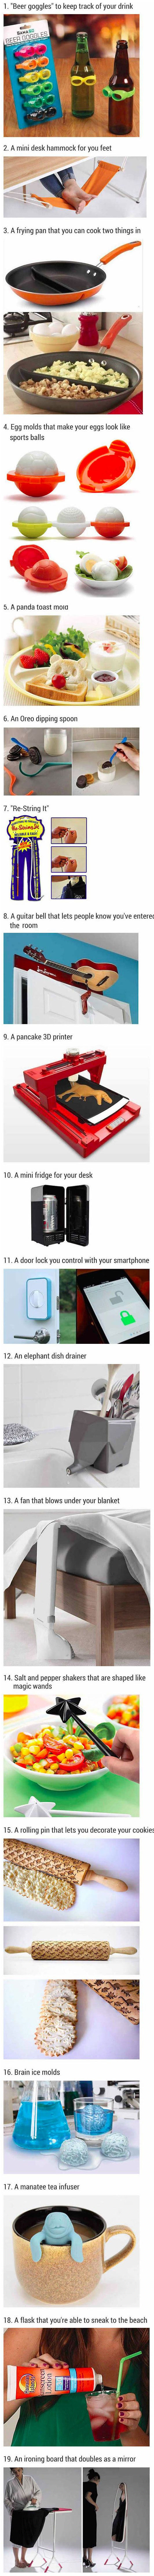 You May Not Need These 19 Things But You Ll Definitely Want Them